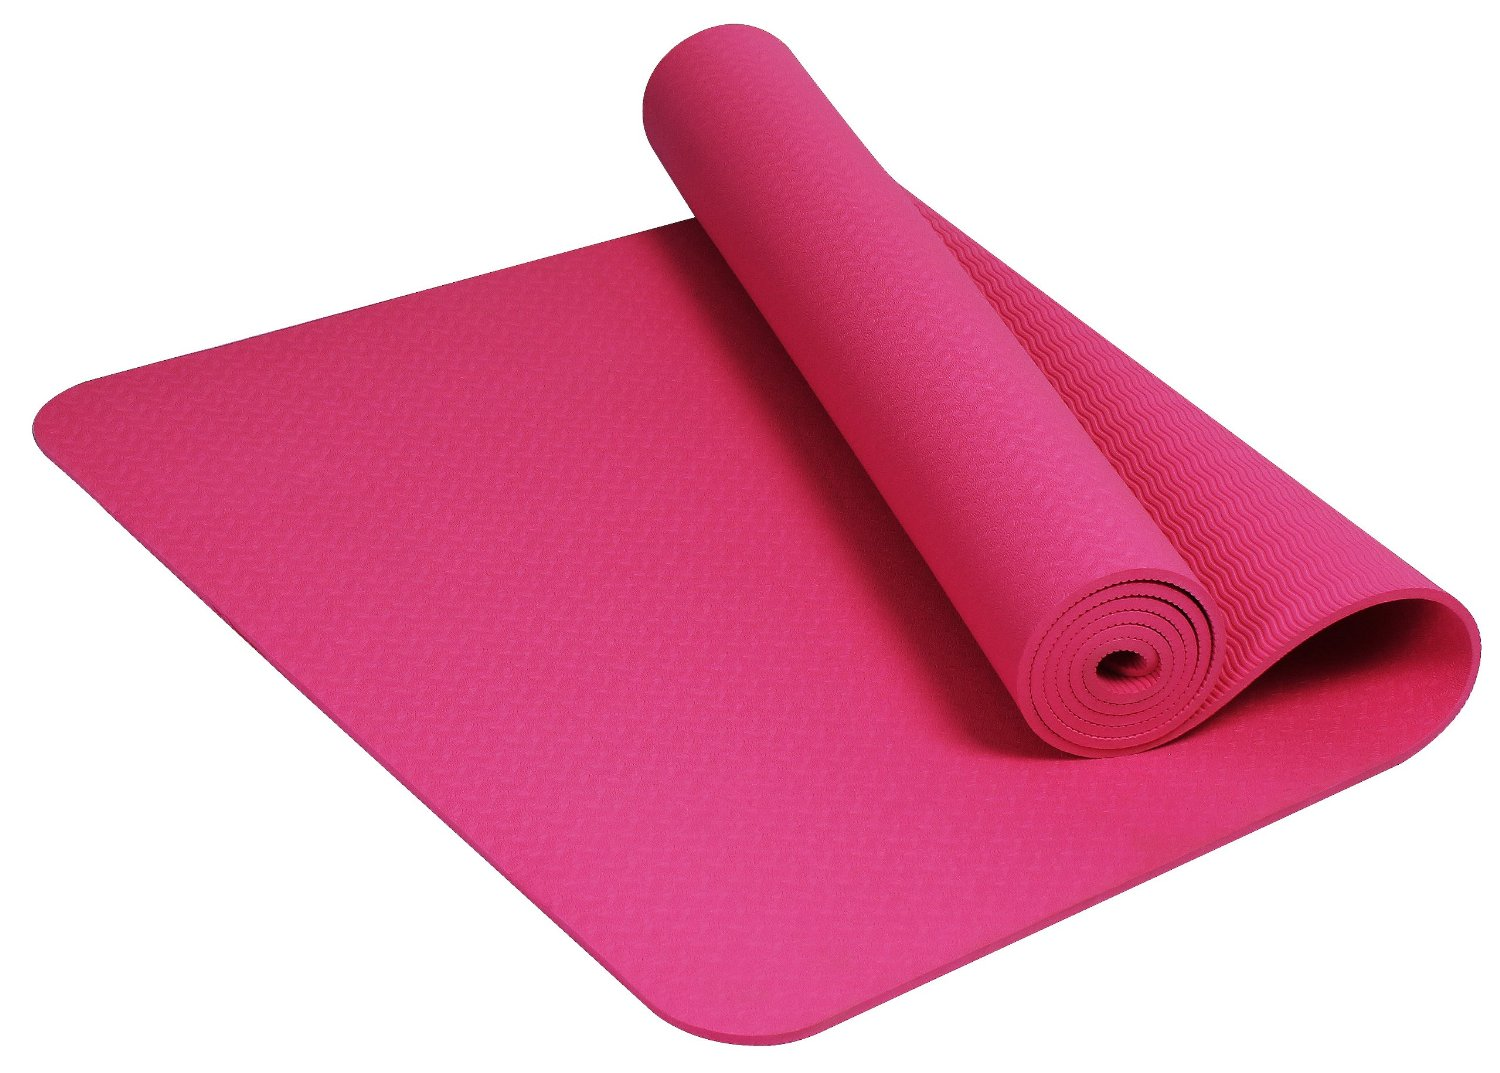 Premium Slip Resistant And Waterproof Yoga Mat Protekgr